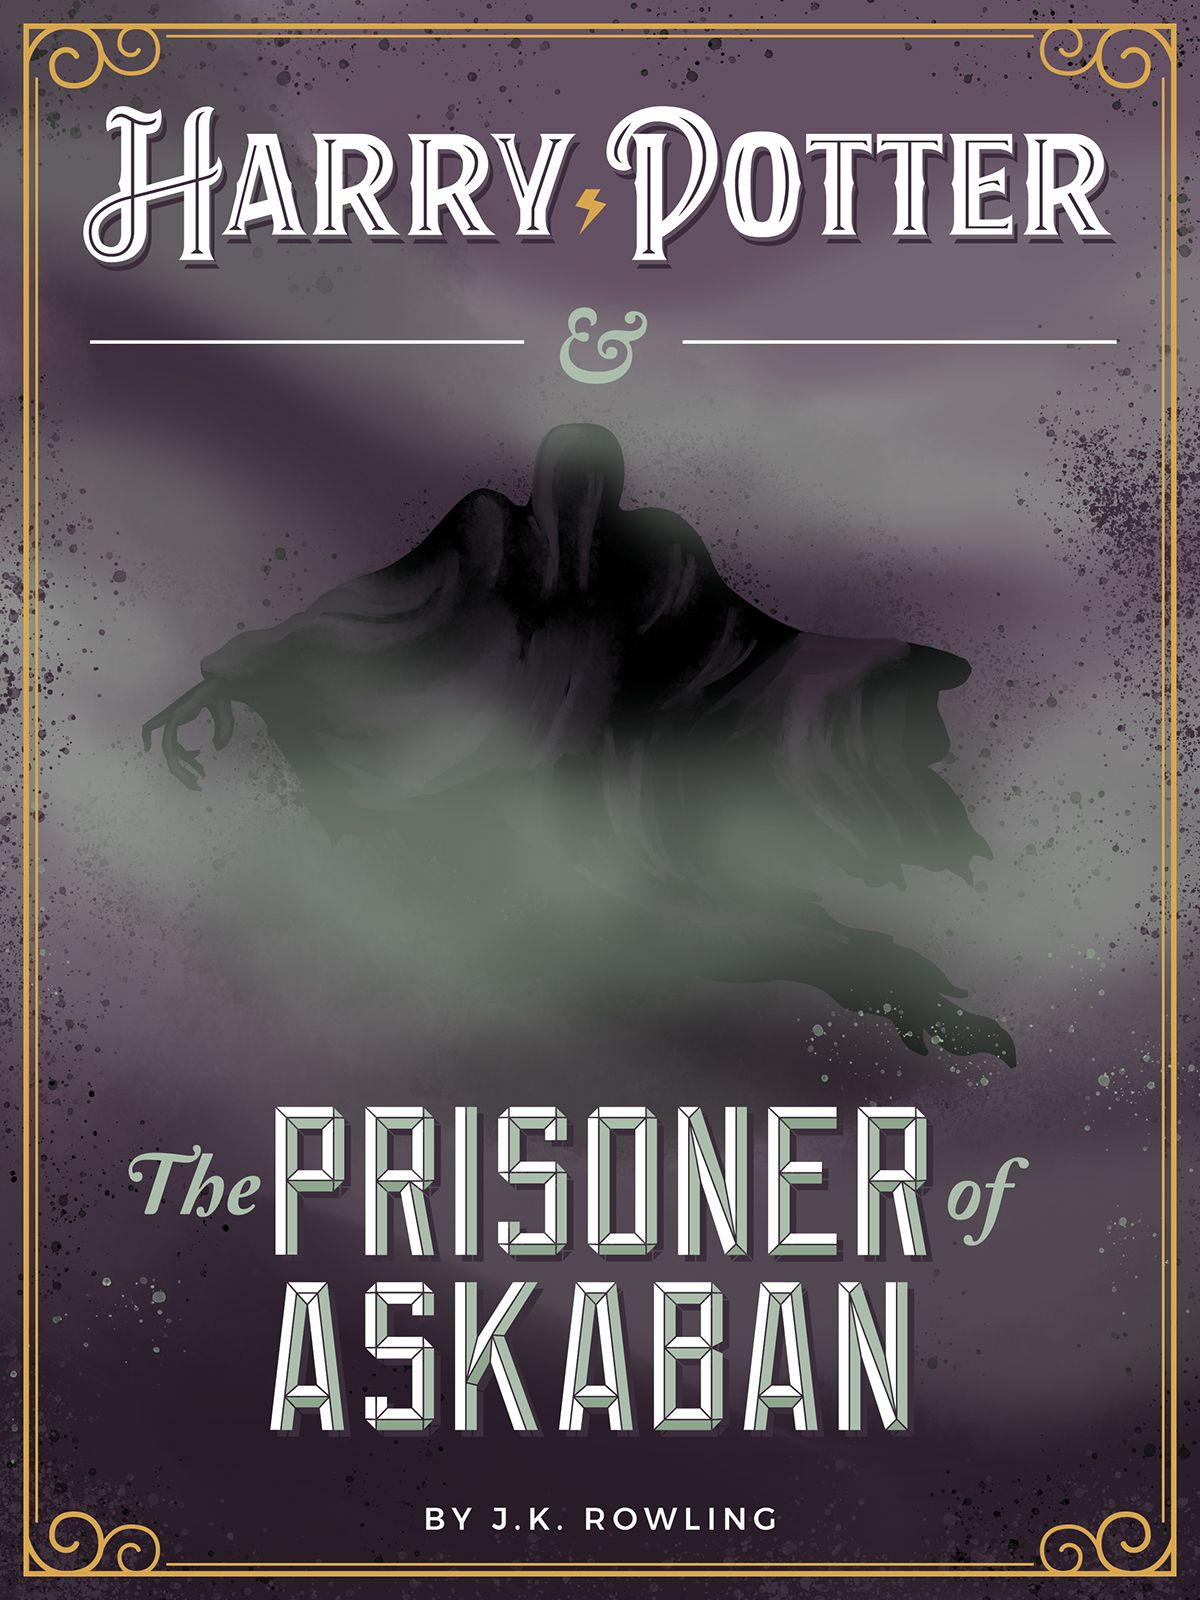 Harry potter posters on behance